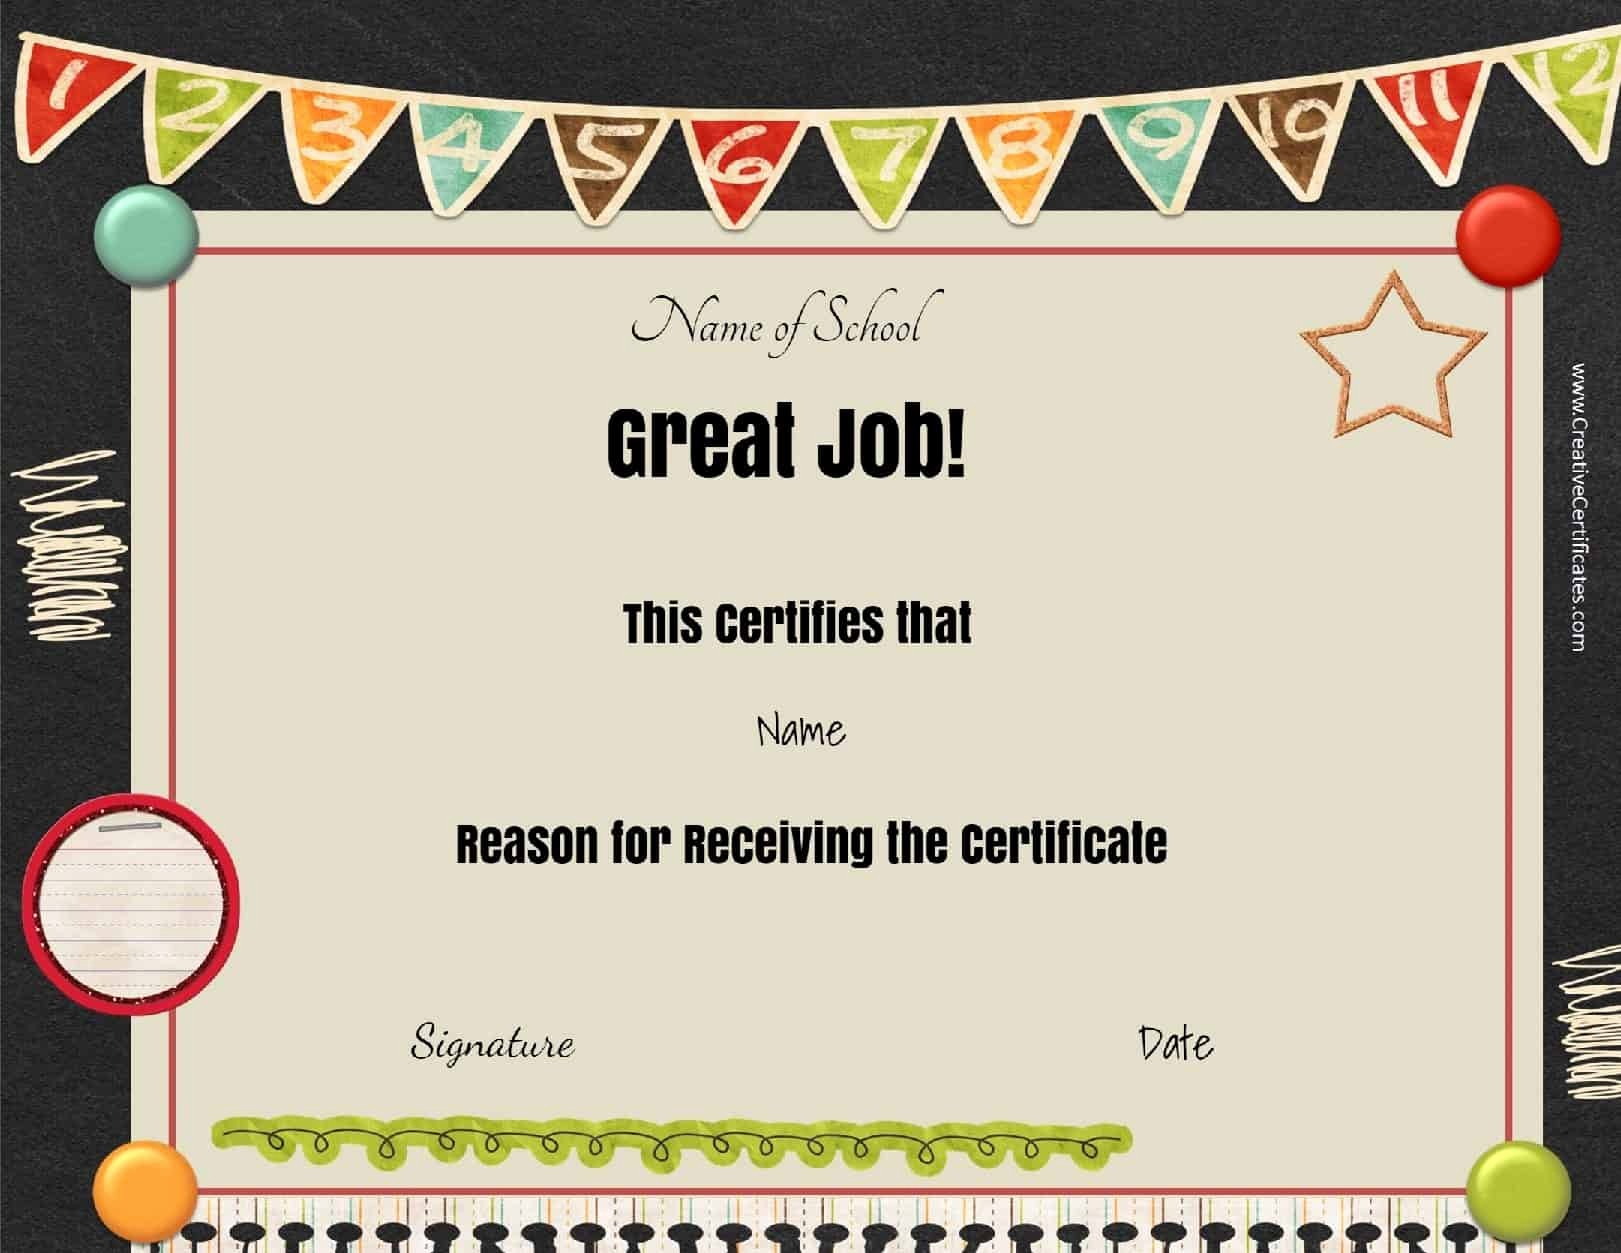 Awards and Certificates for Students Beautiful Free School Certificates & Awards